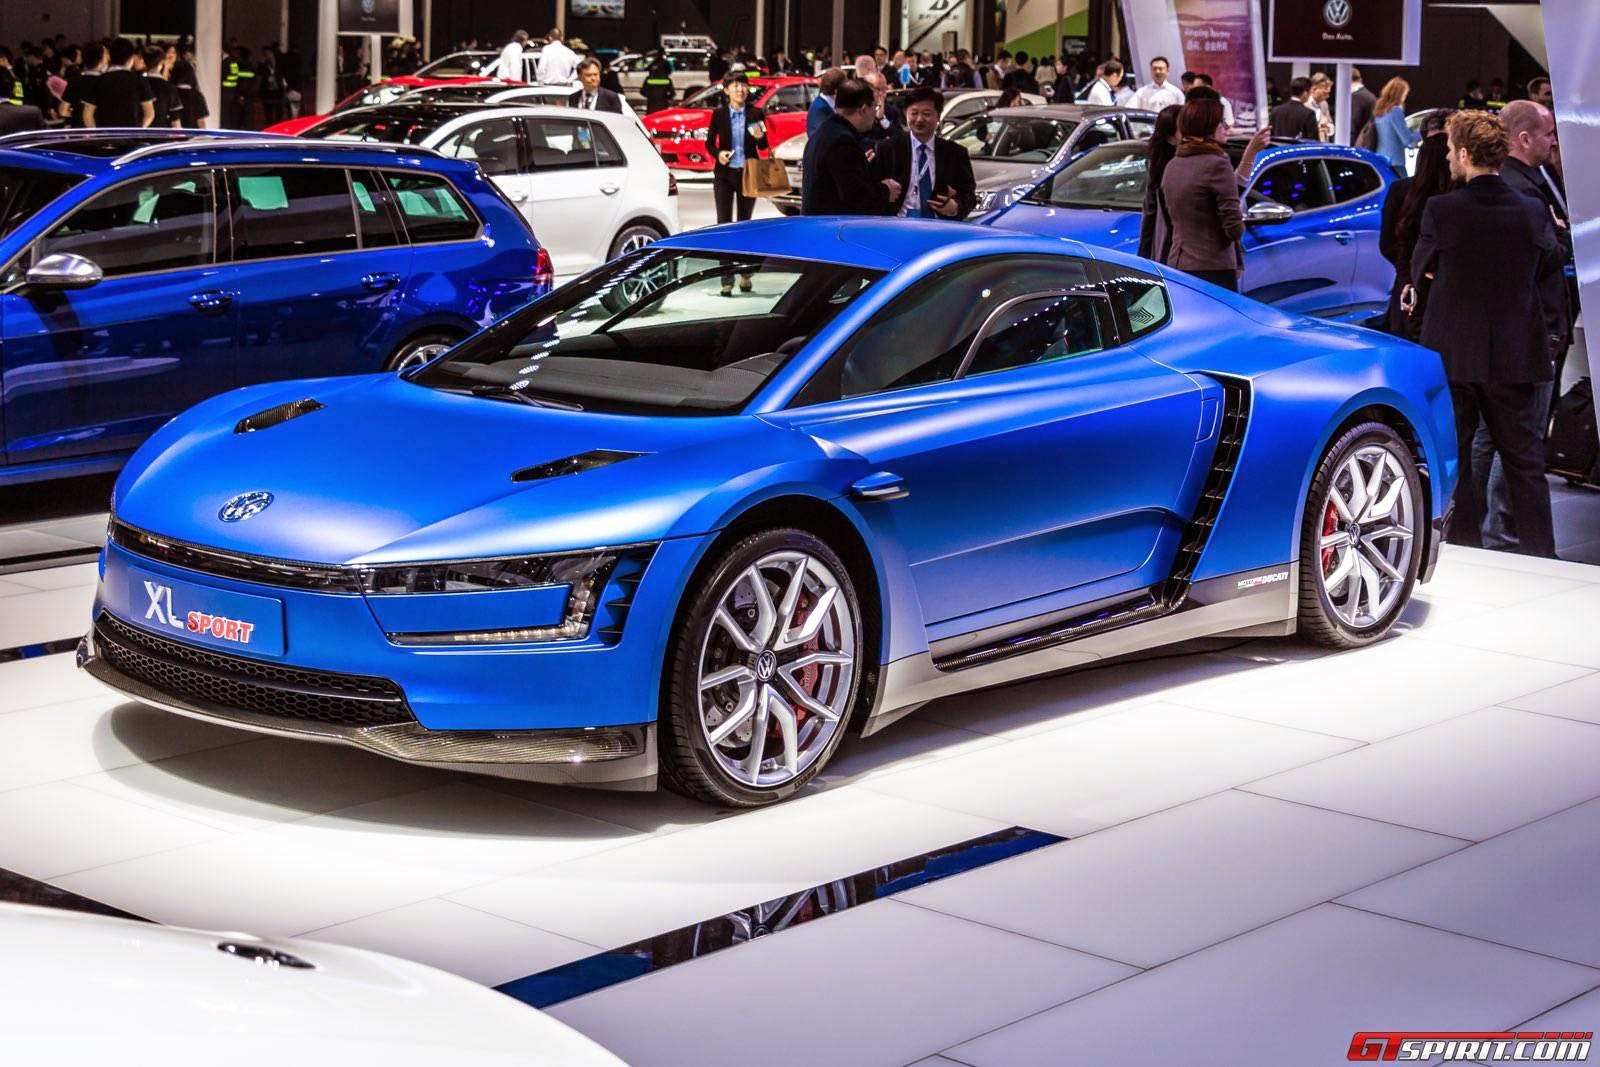 Volkswagen S Sports Car With The Ducati Engine